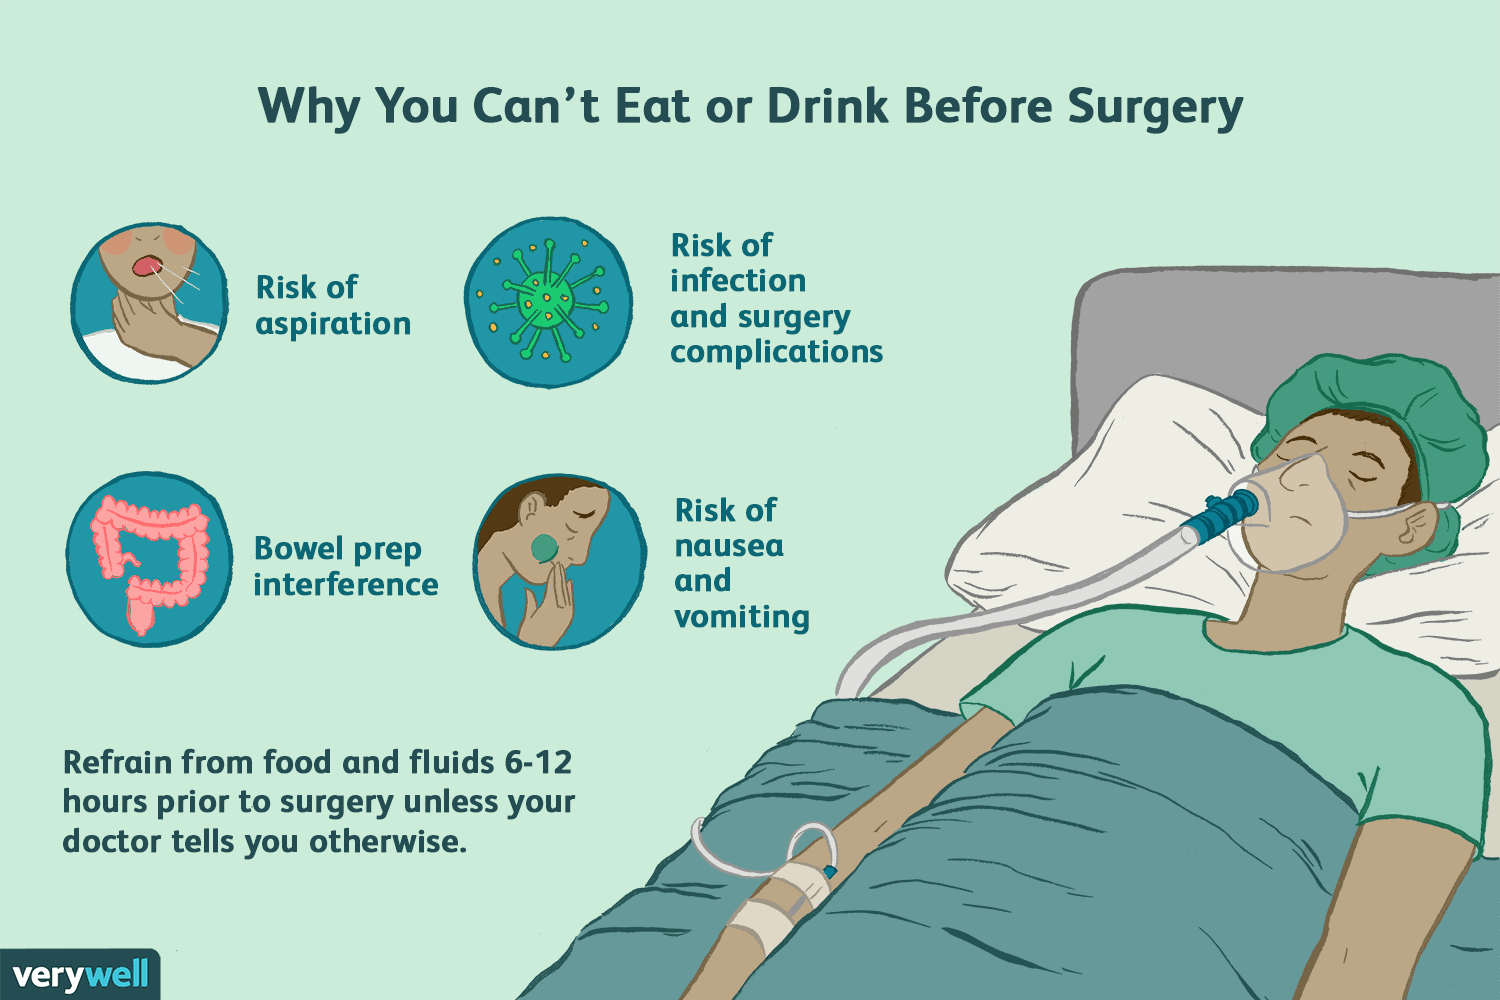 Why You Can't Eat or Drink Before Surgery